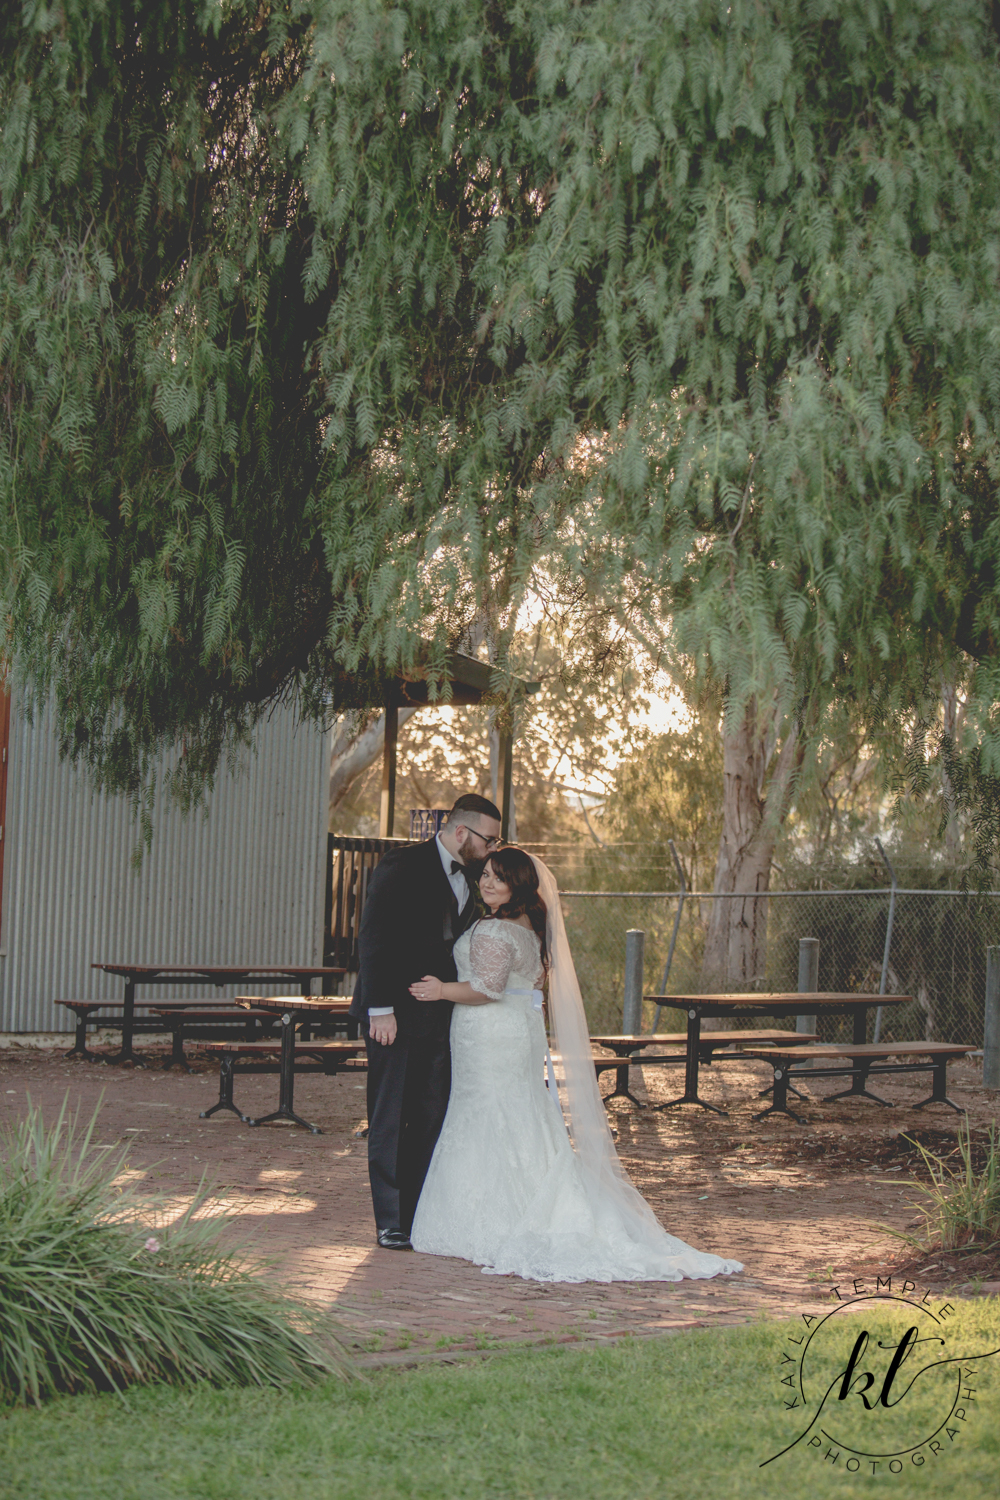 Adelaide_Wedding_Photographer-88.jpg